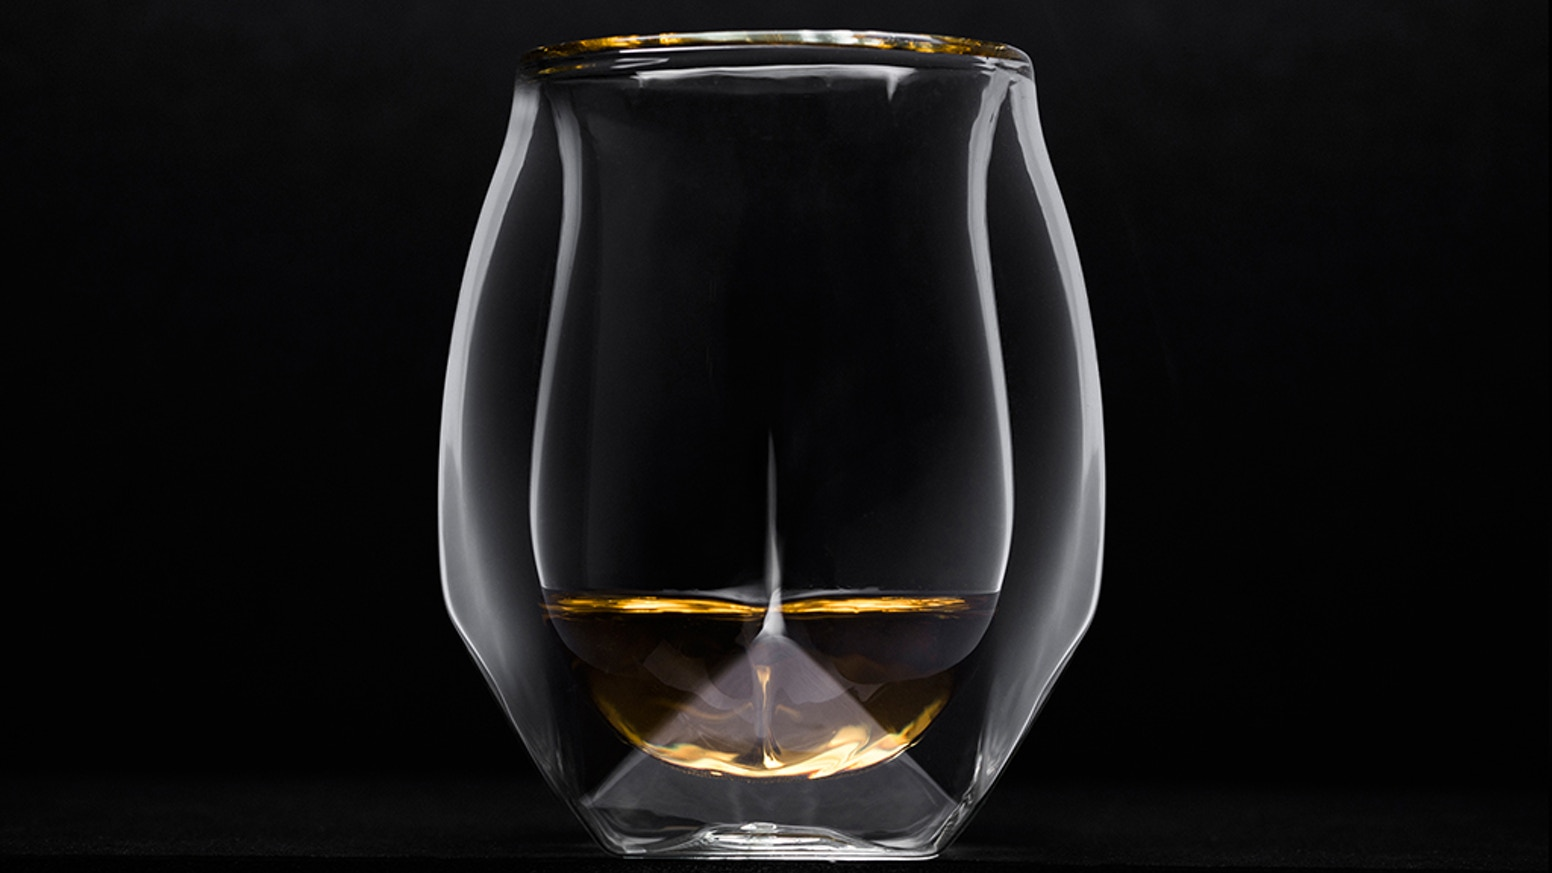 Combining design, science, and ritual for the perfect whisky drinking experience.